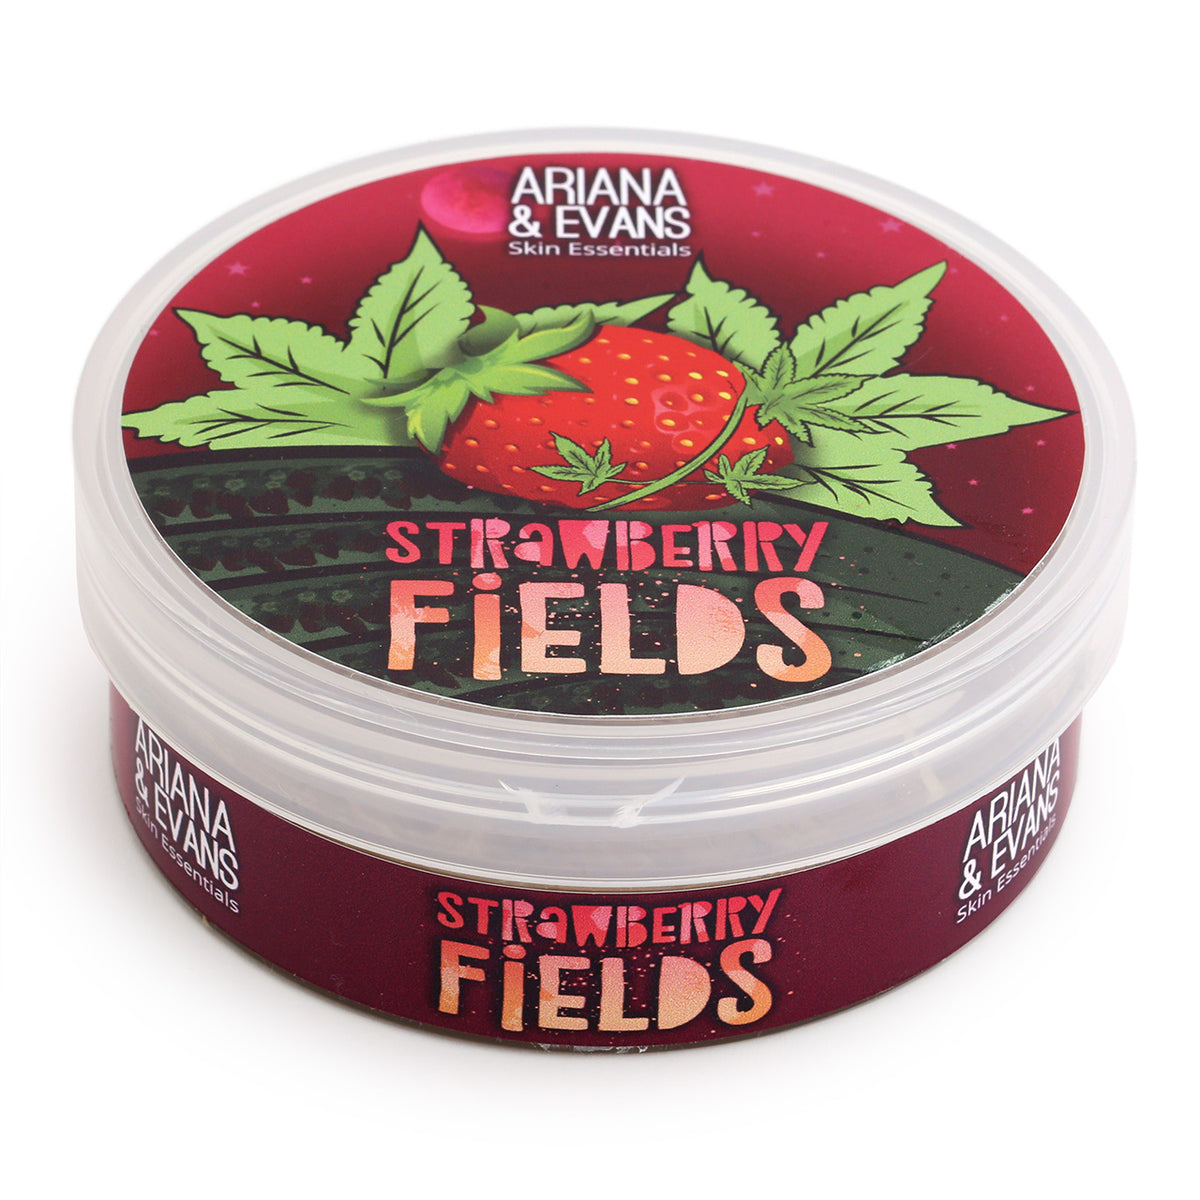 Ariana & Evans Shave Soap - Strawberry Fields - 118ml Tub, 3/4 view